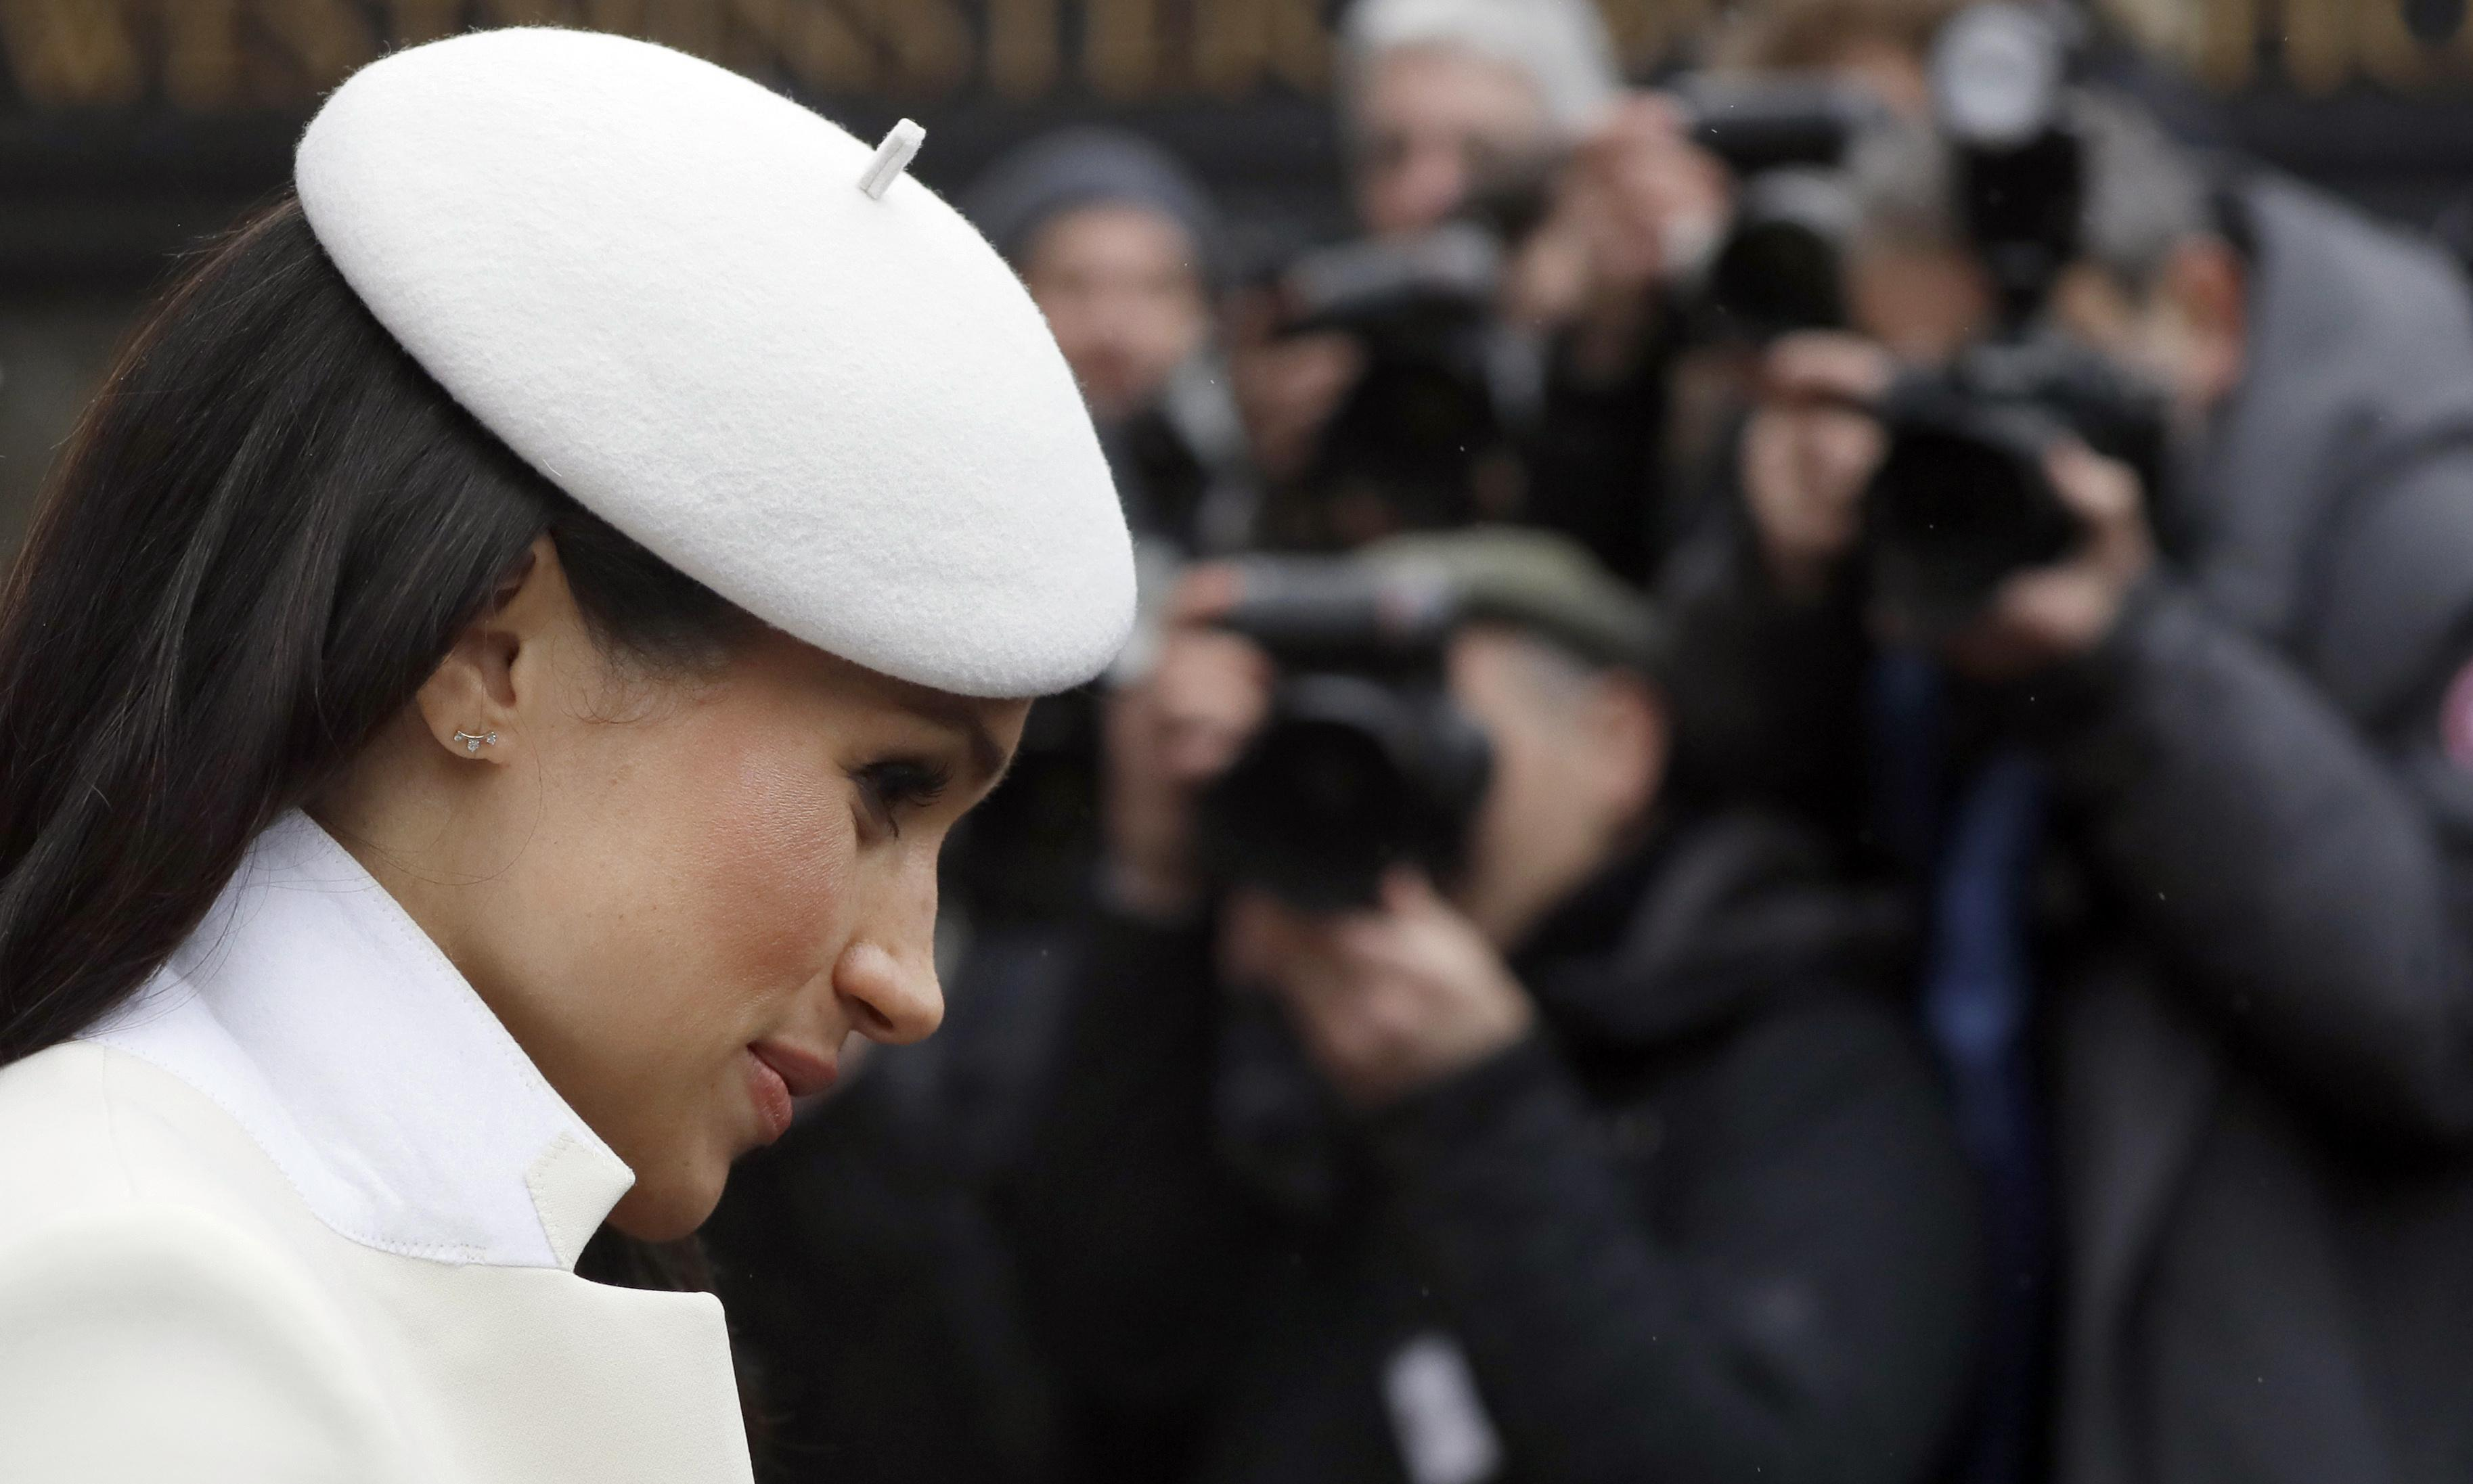 Simply by defying the tabloids, Meghan has already beaten them